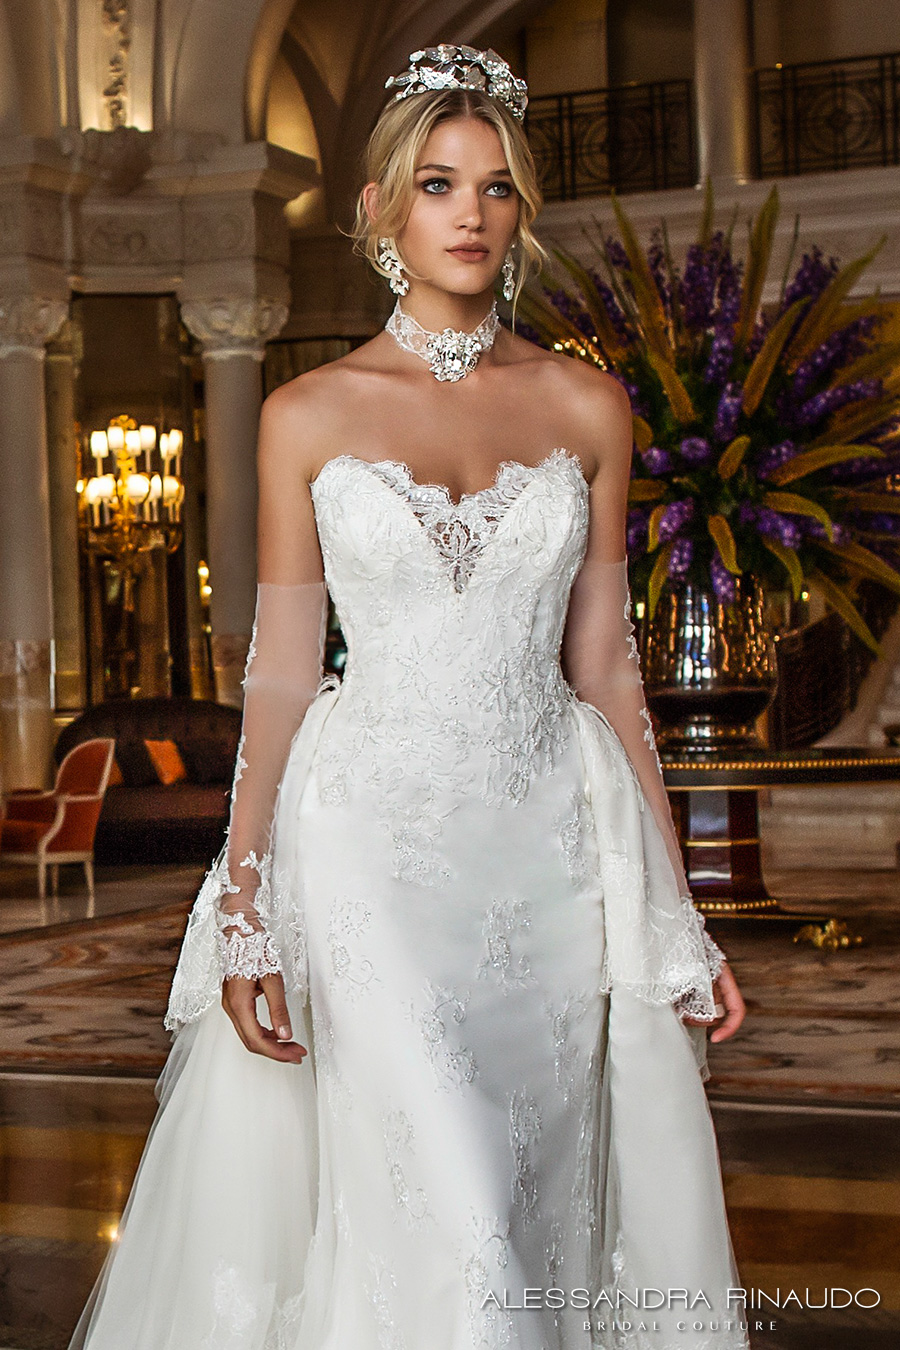 alessandra rinaudo 2017 bridal long fingerless lace gloves strapless deep sweetheart v neck heavily embellished bodice sheath wedding dress layered long train (barbarella) zv